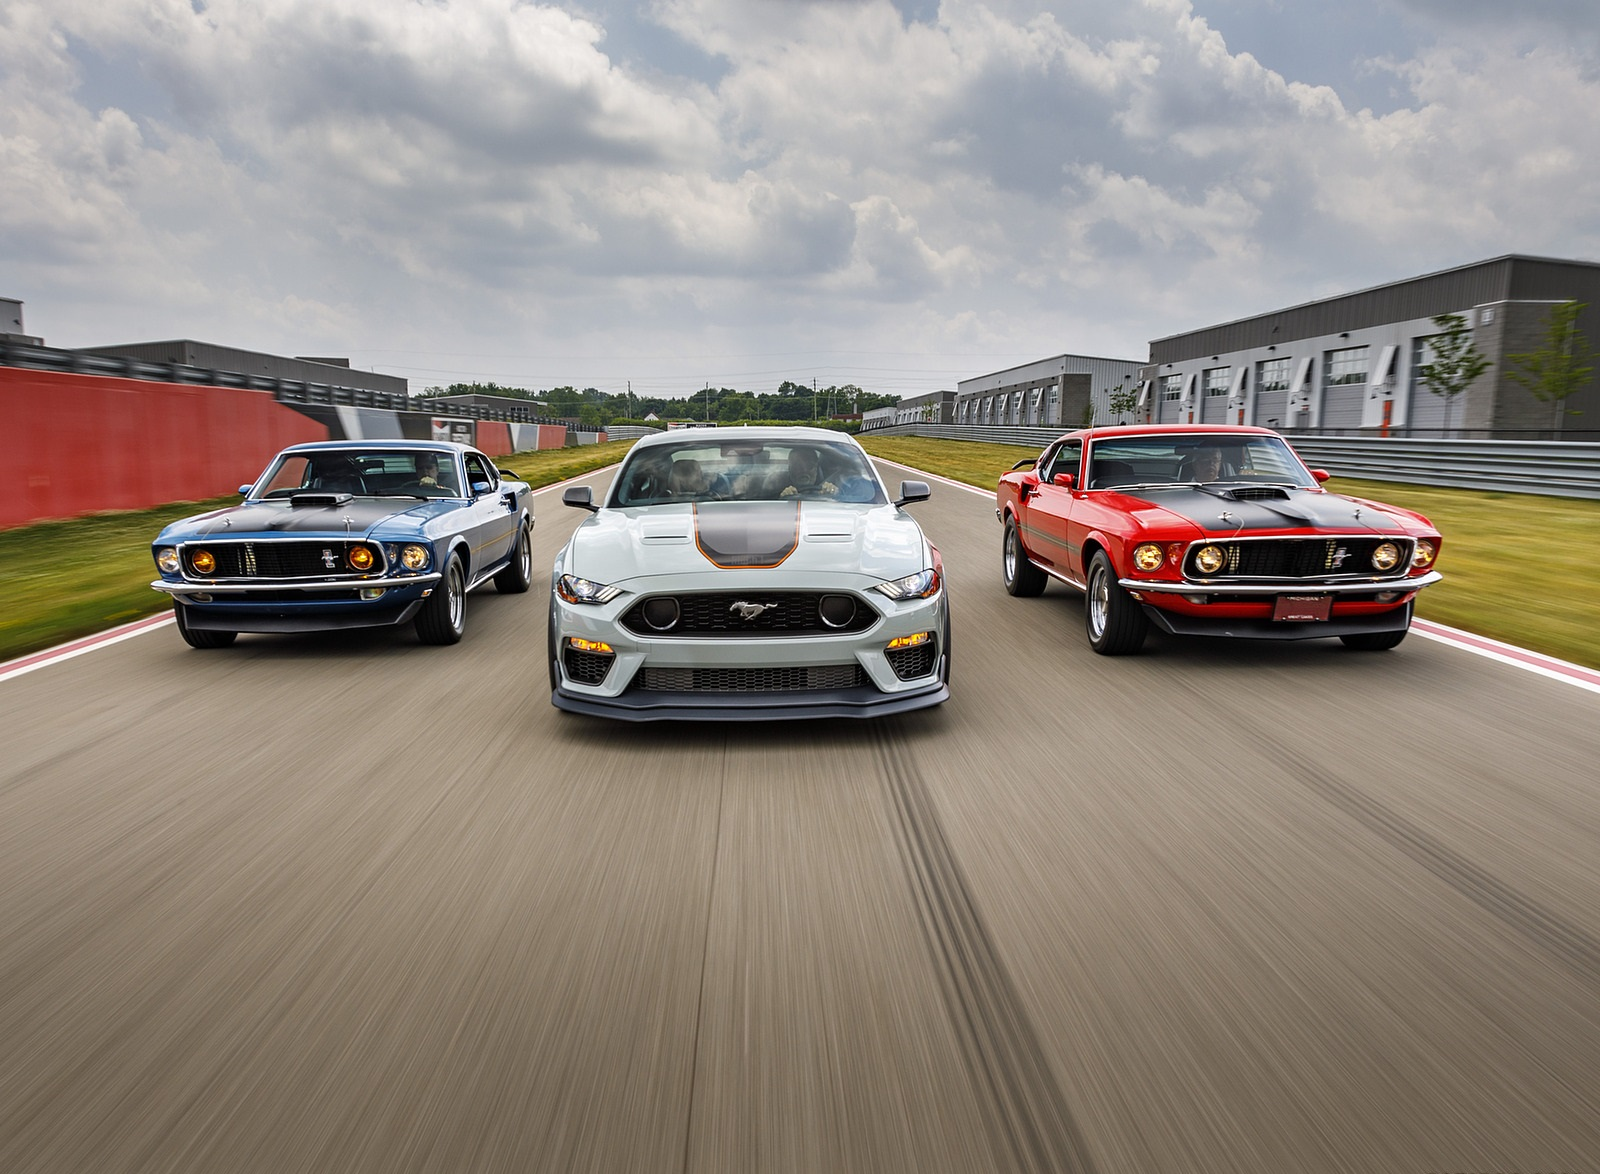 2021 Ford Mustang Mach 1 and 1969 Mach 1 Wallpapers (9)